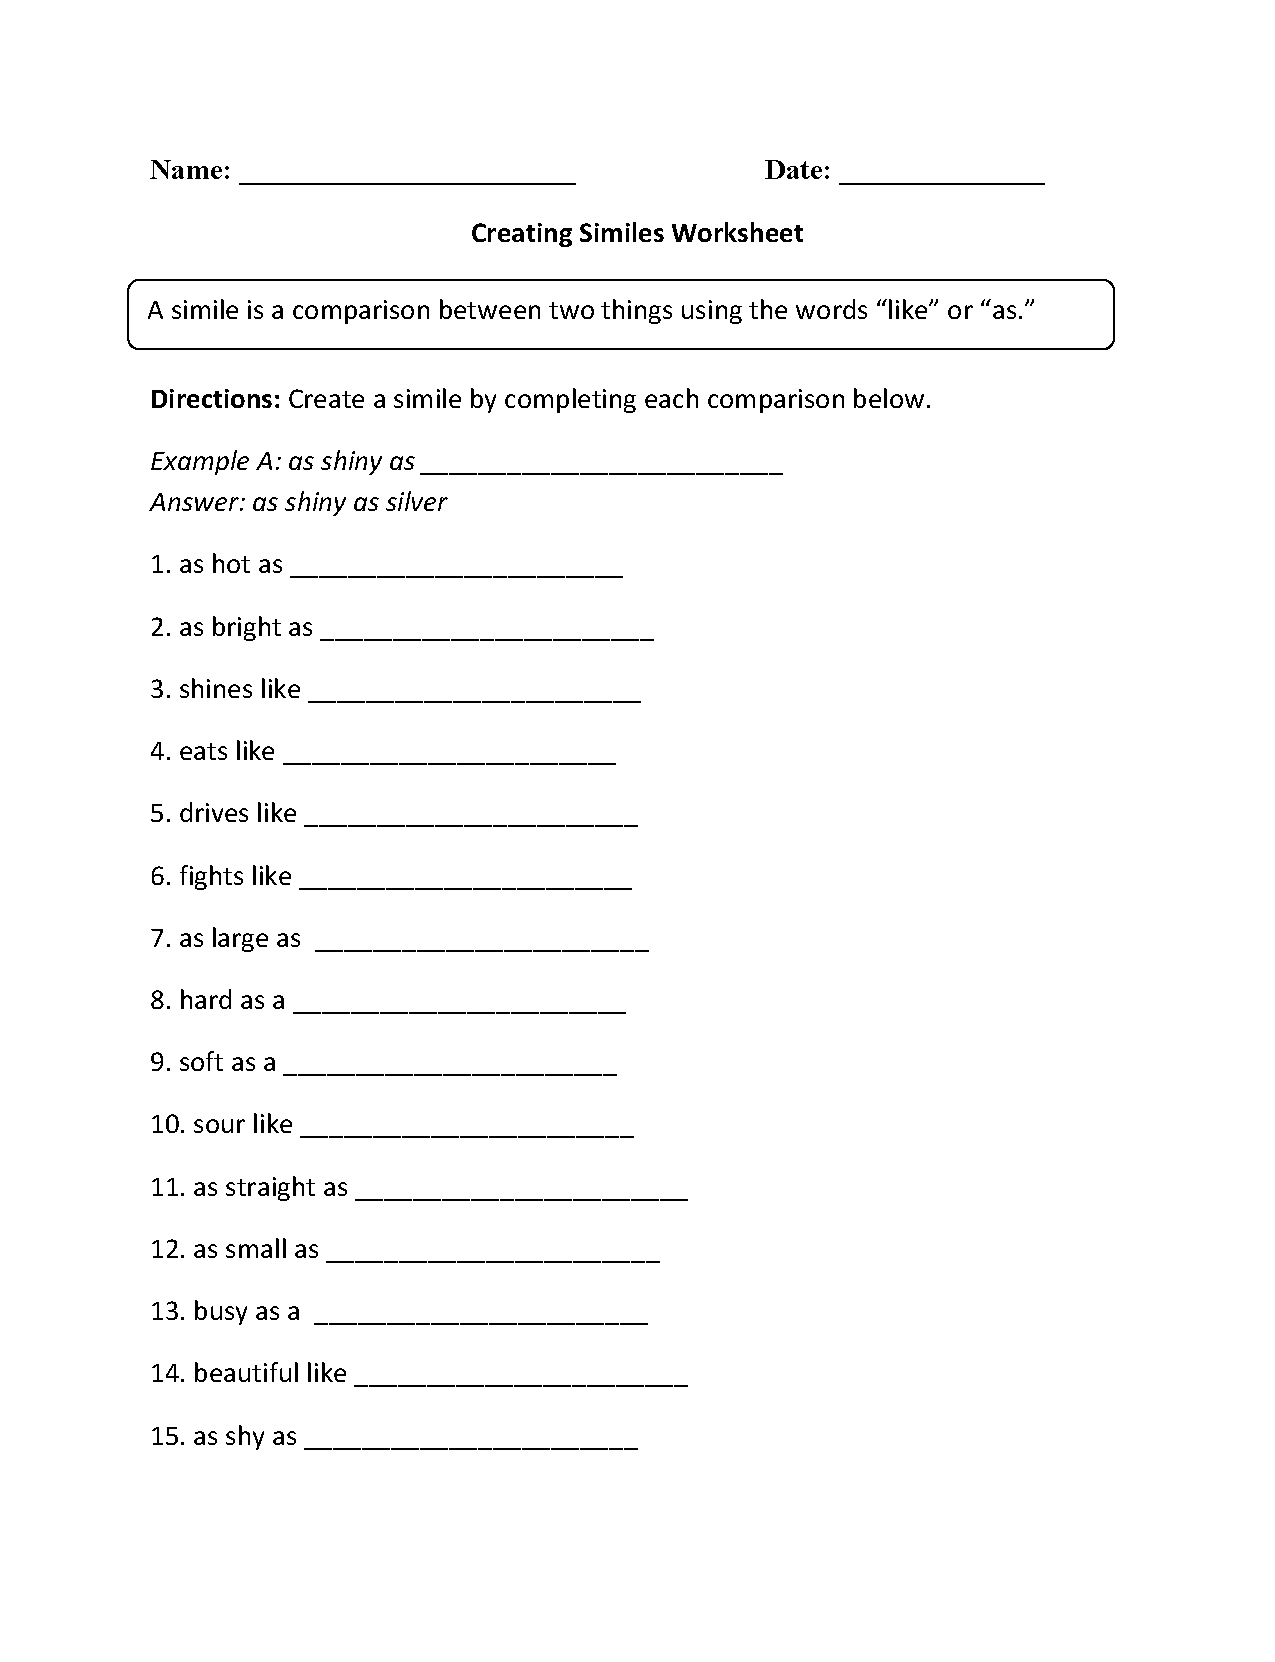 worksheet Create Worksheets similes worksheets creating worksheet worksheet